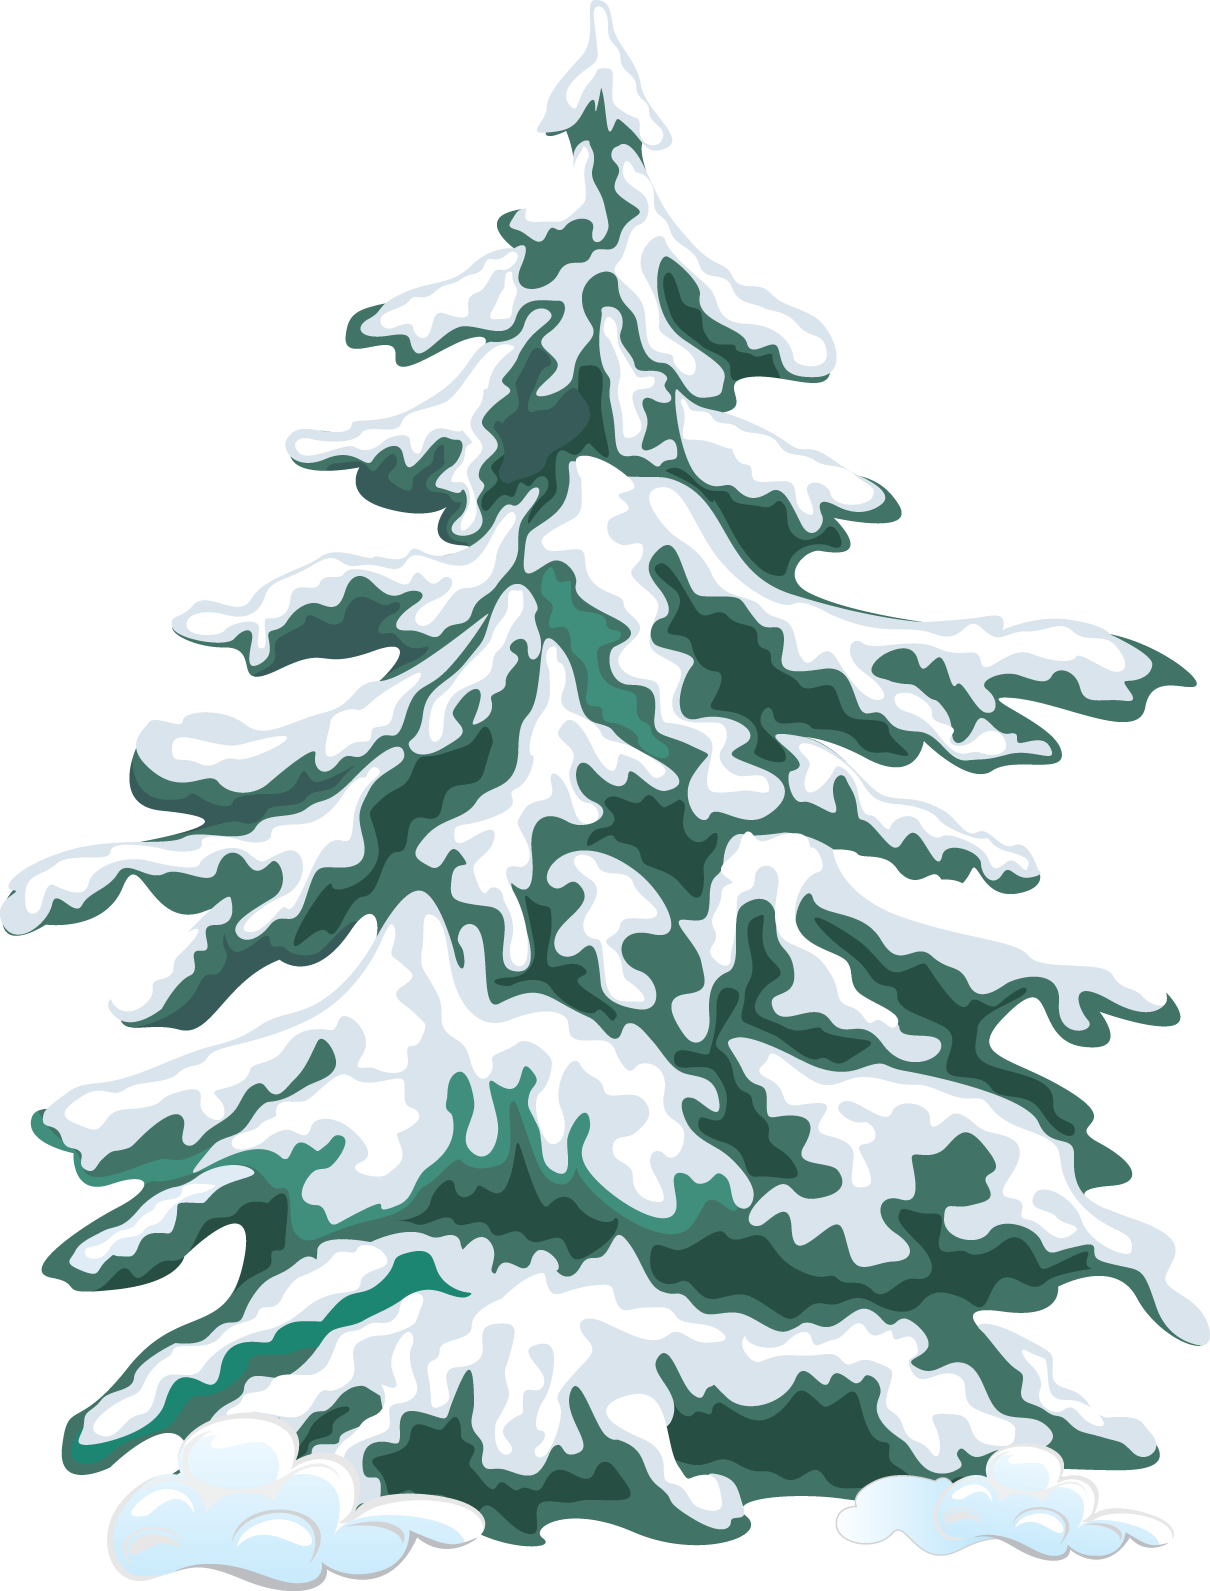 snow covered pine trees png